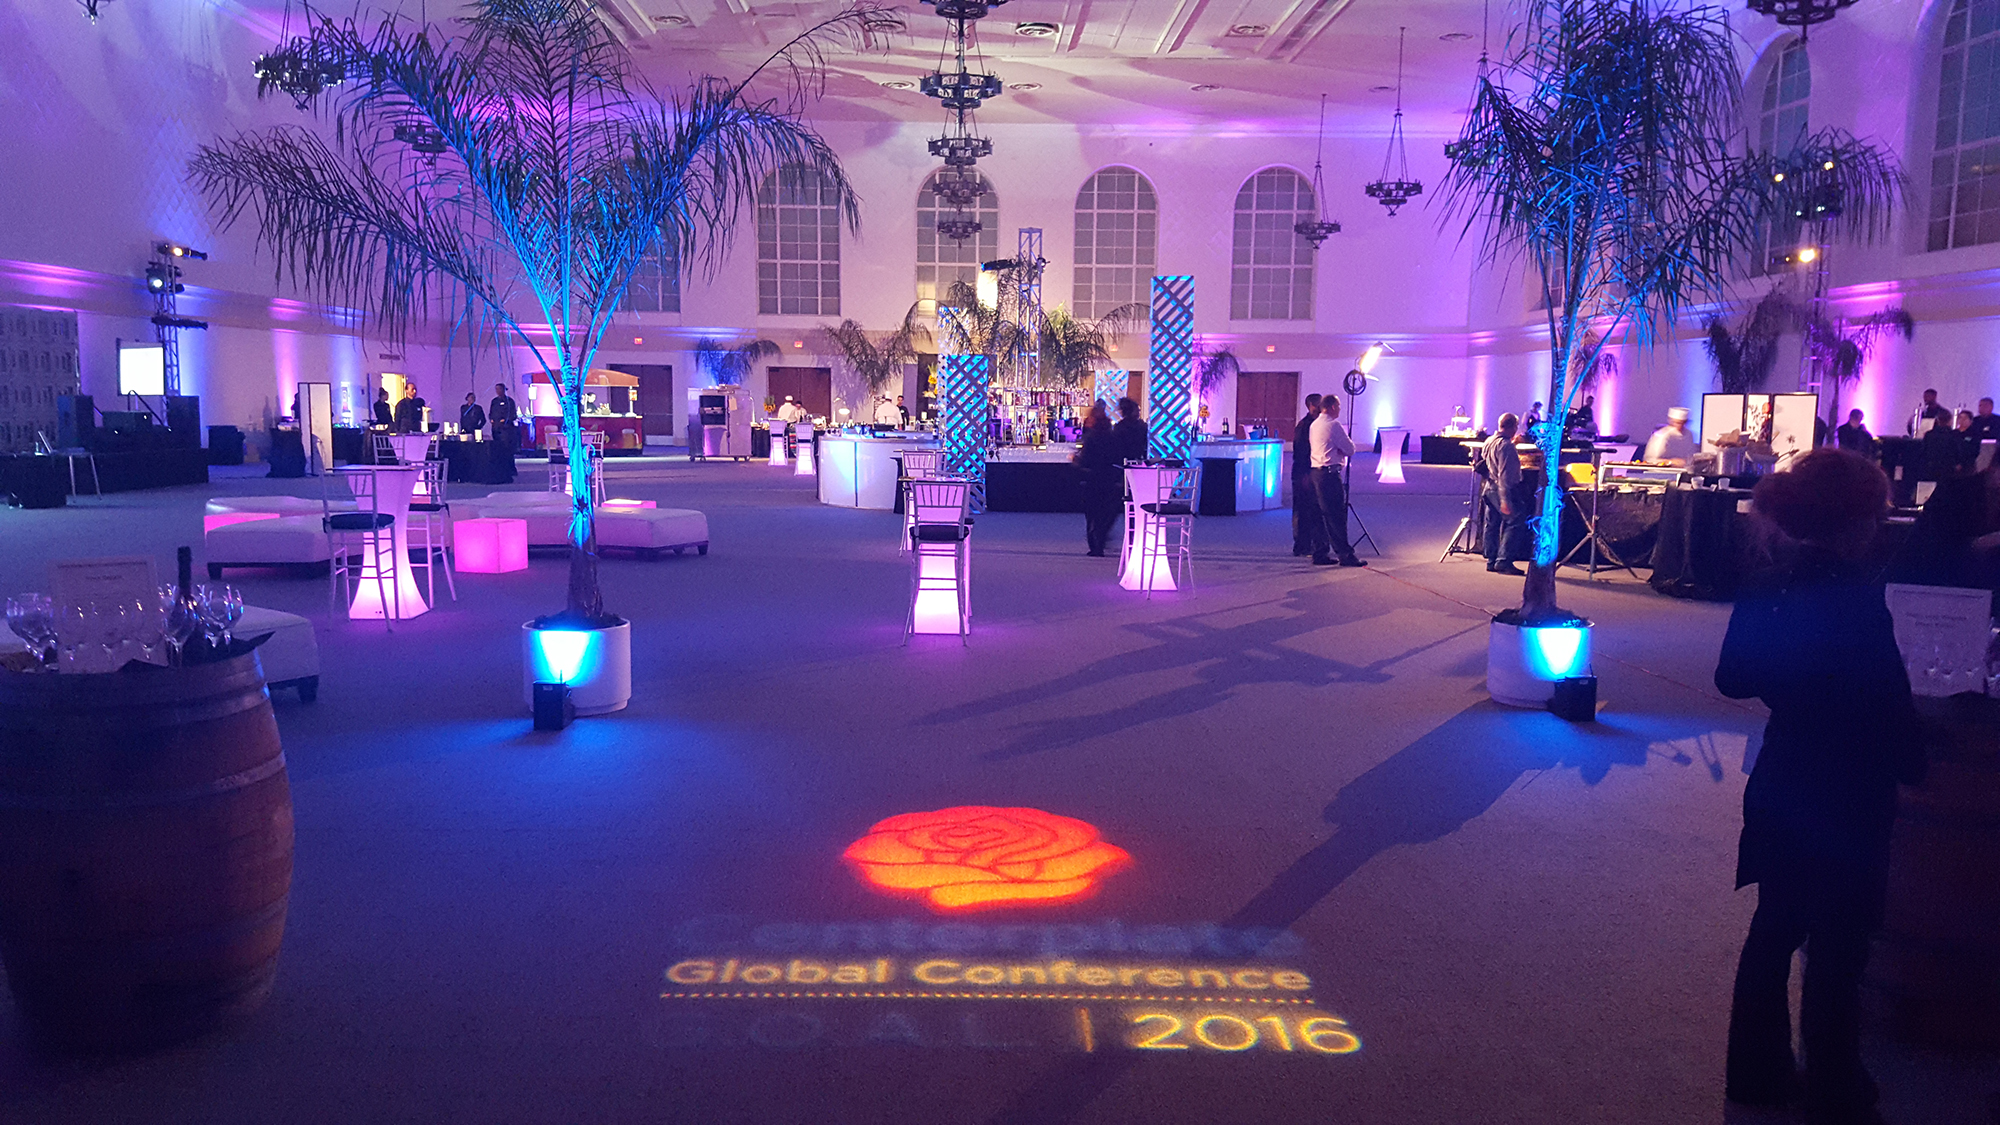 Centerplate Global Conference 2016